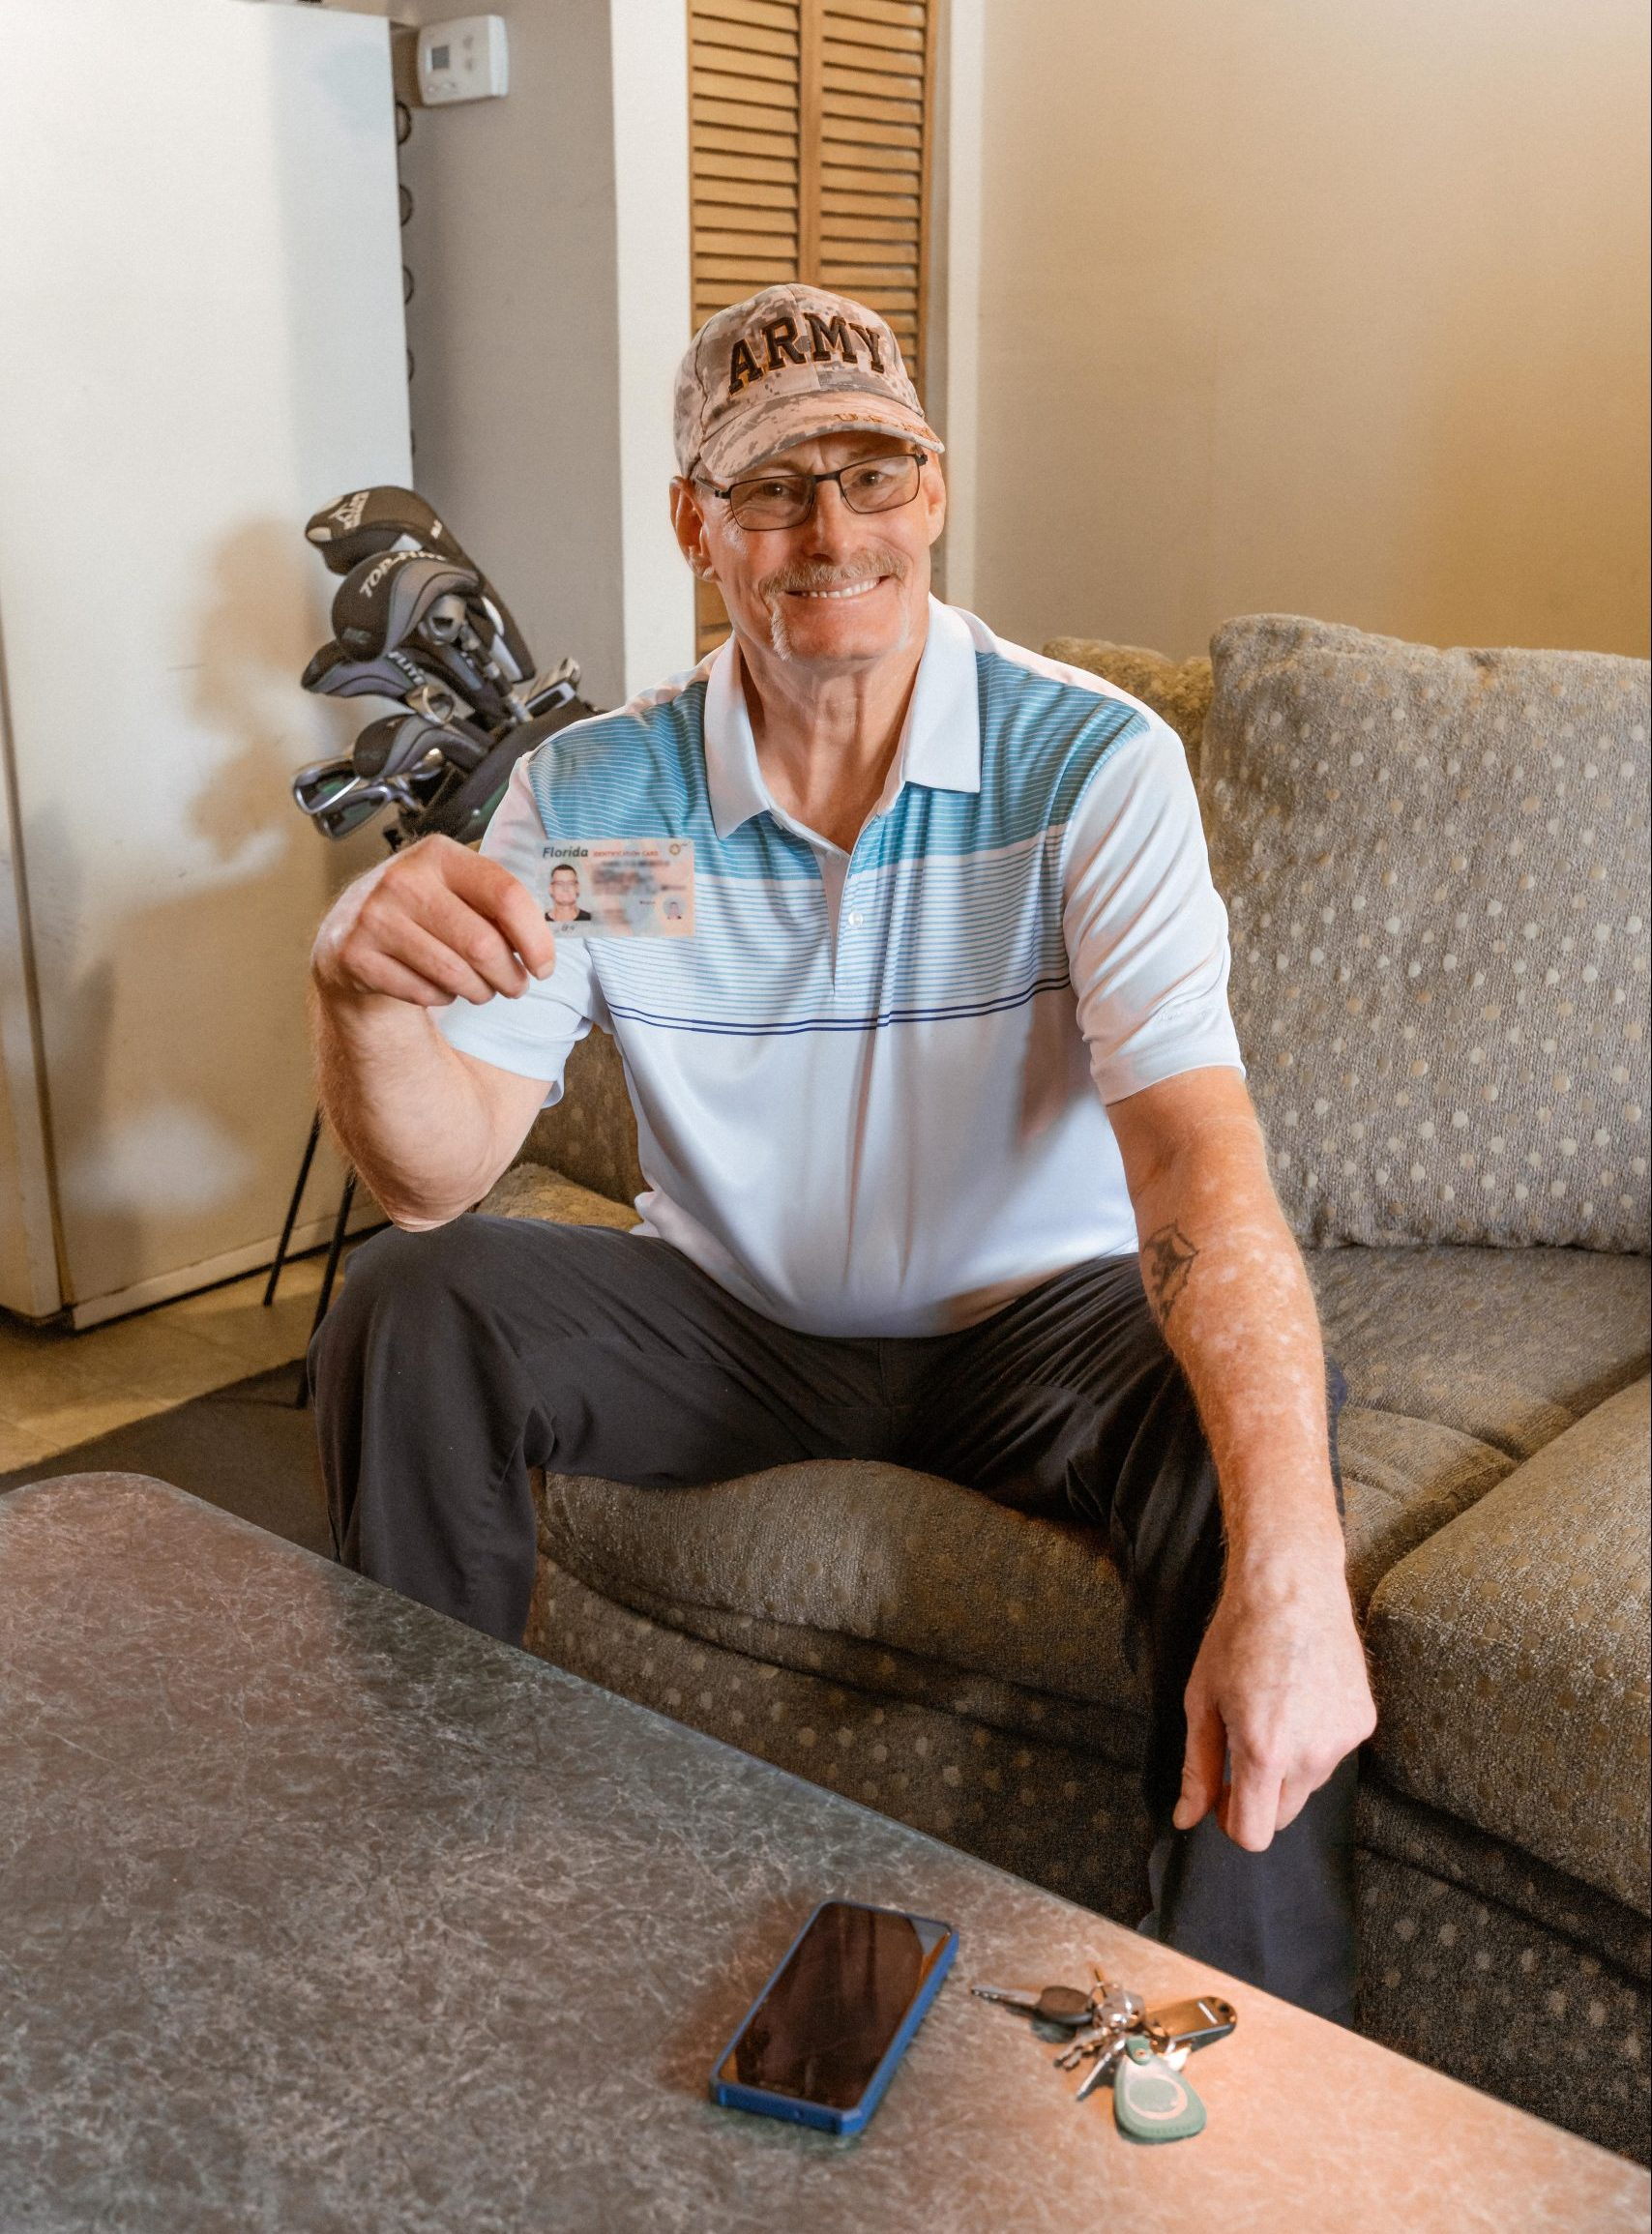 IDignity client Chris, on his couch in his apartment with the ID that made it possible.